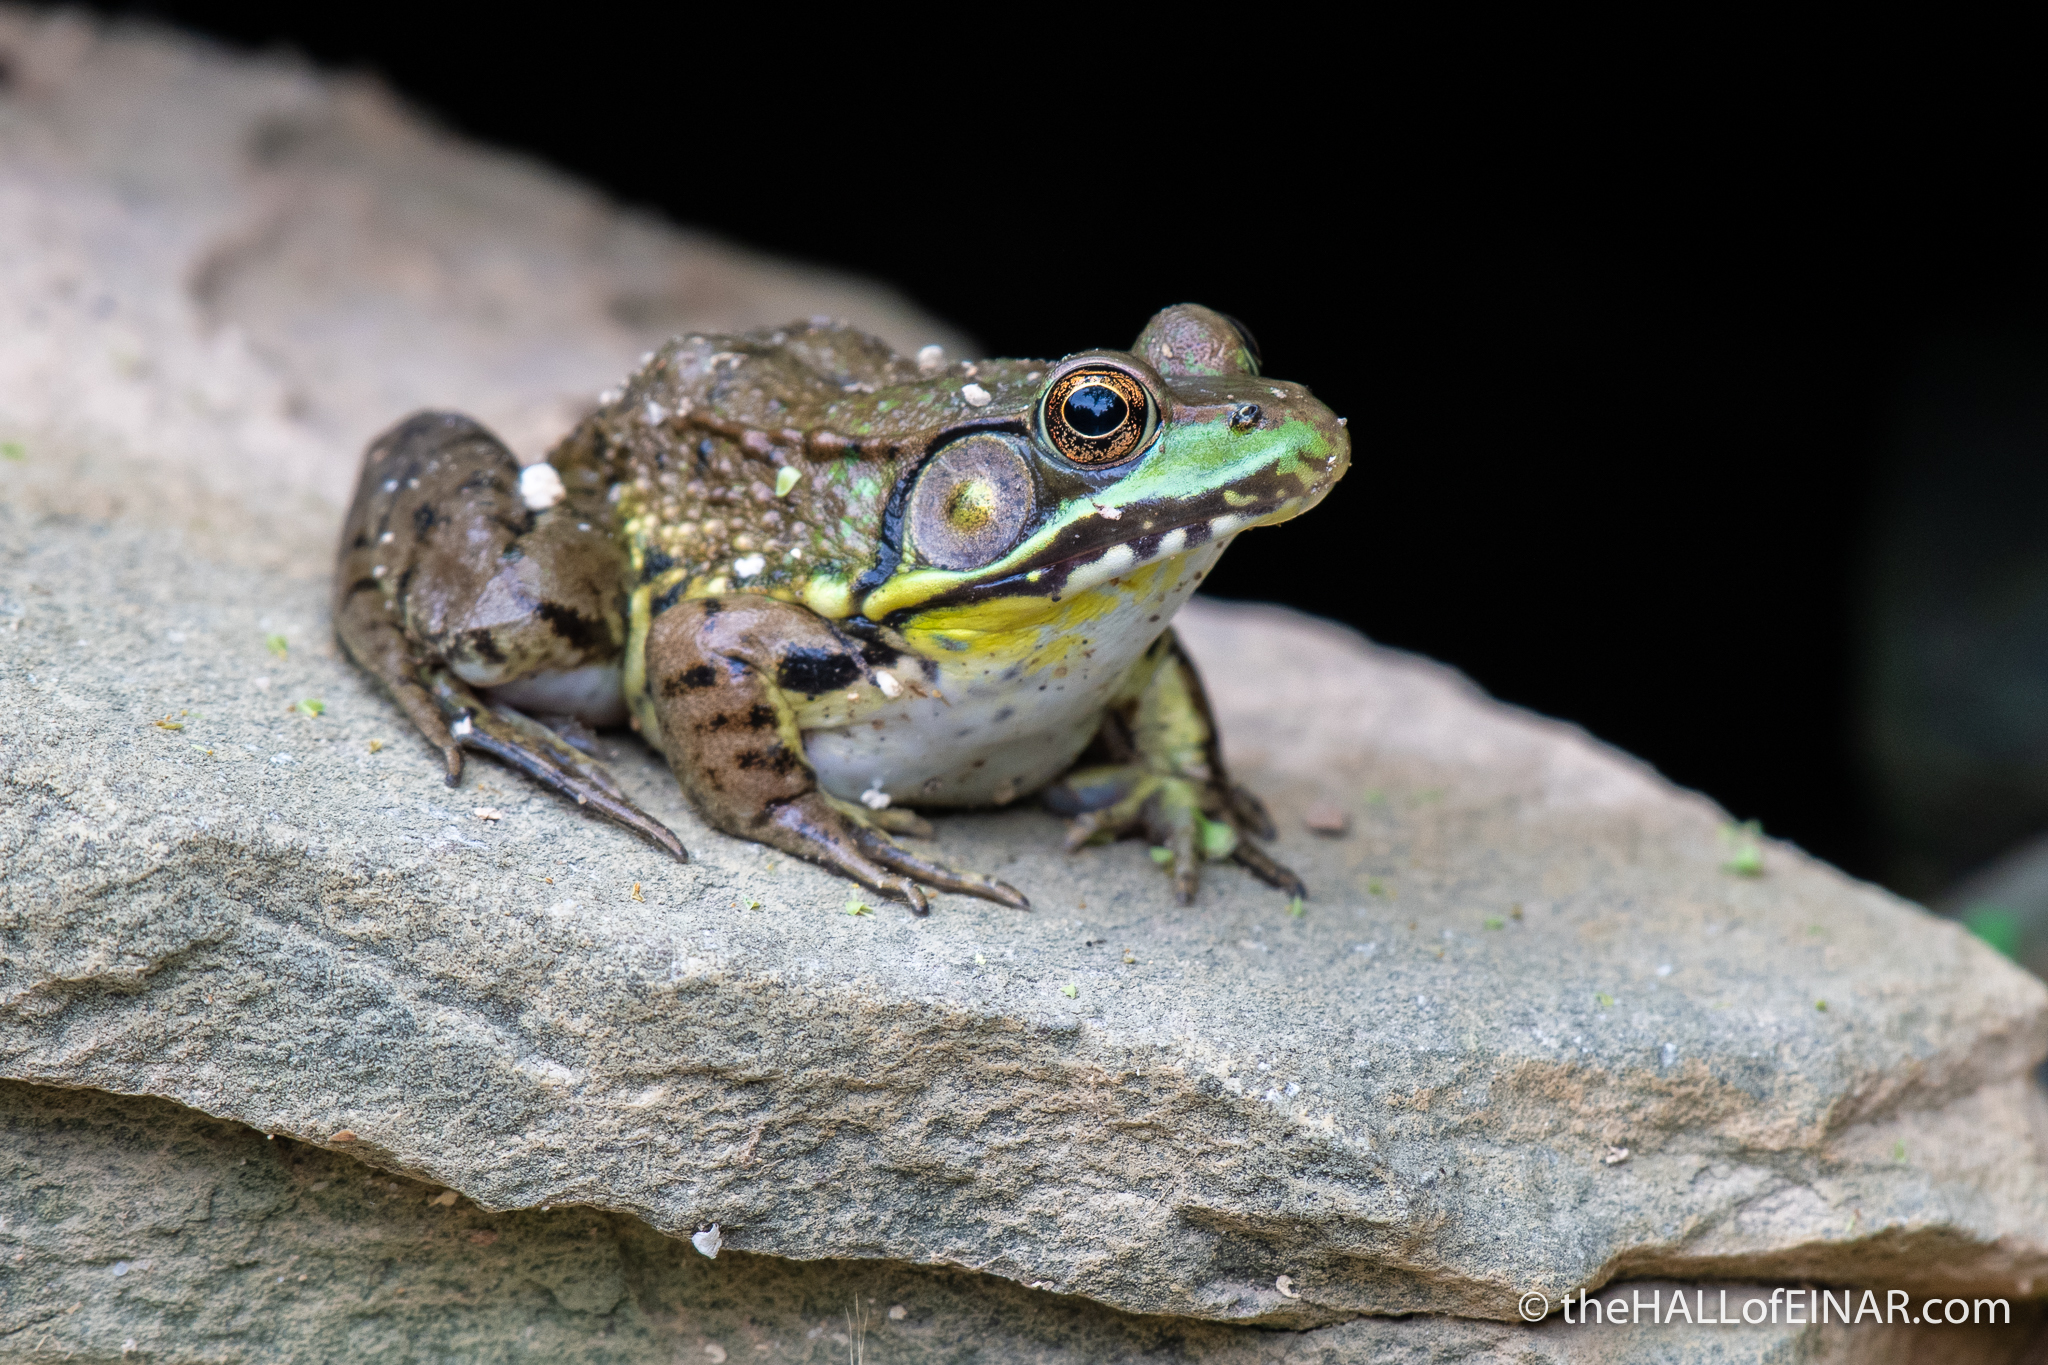 Green Frog - The Hall of Einar - photograph (c) David Bailey (not the)